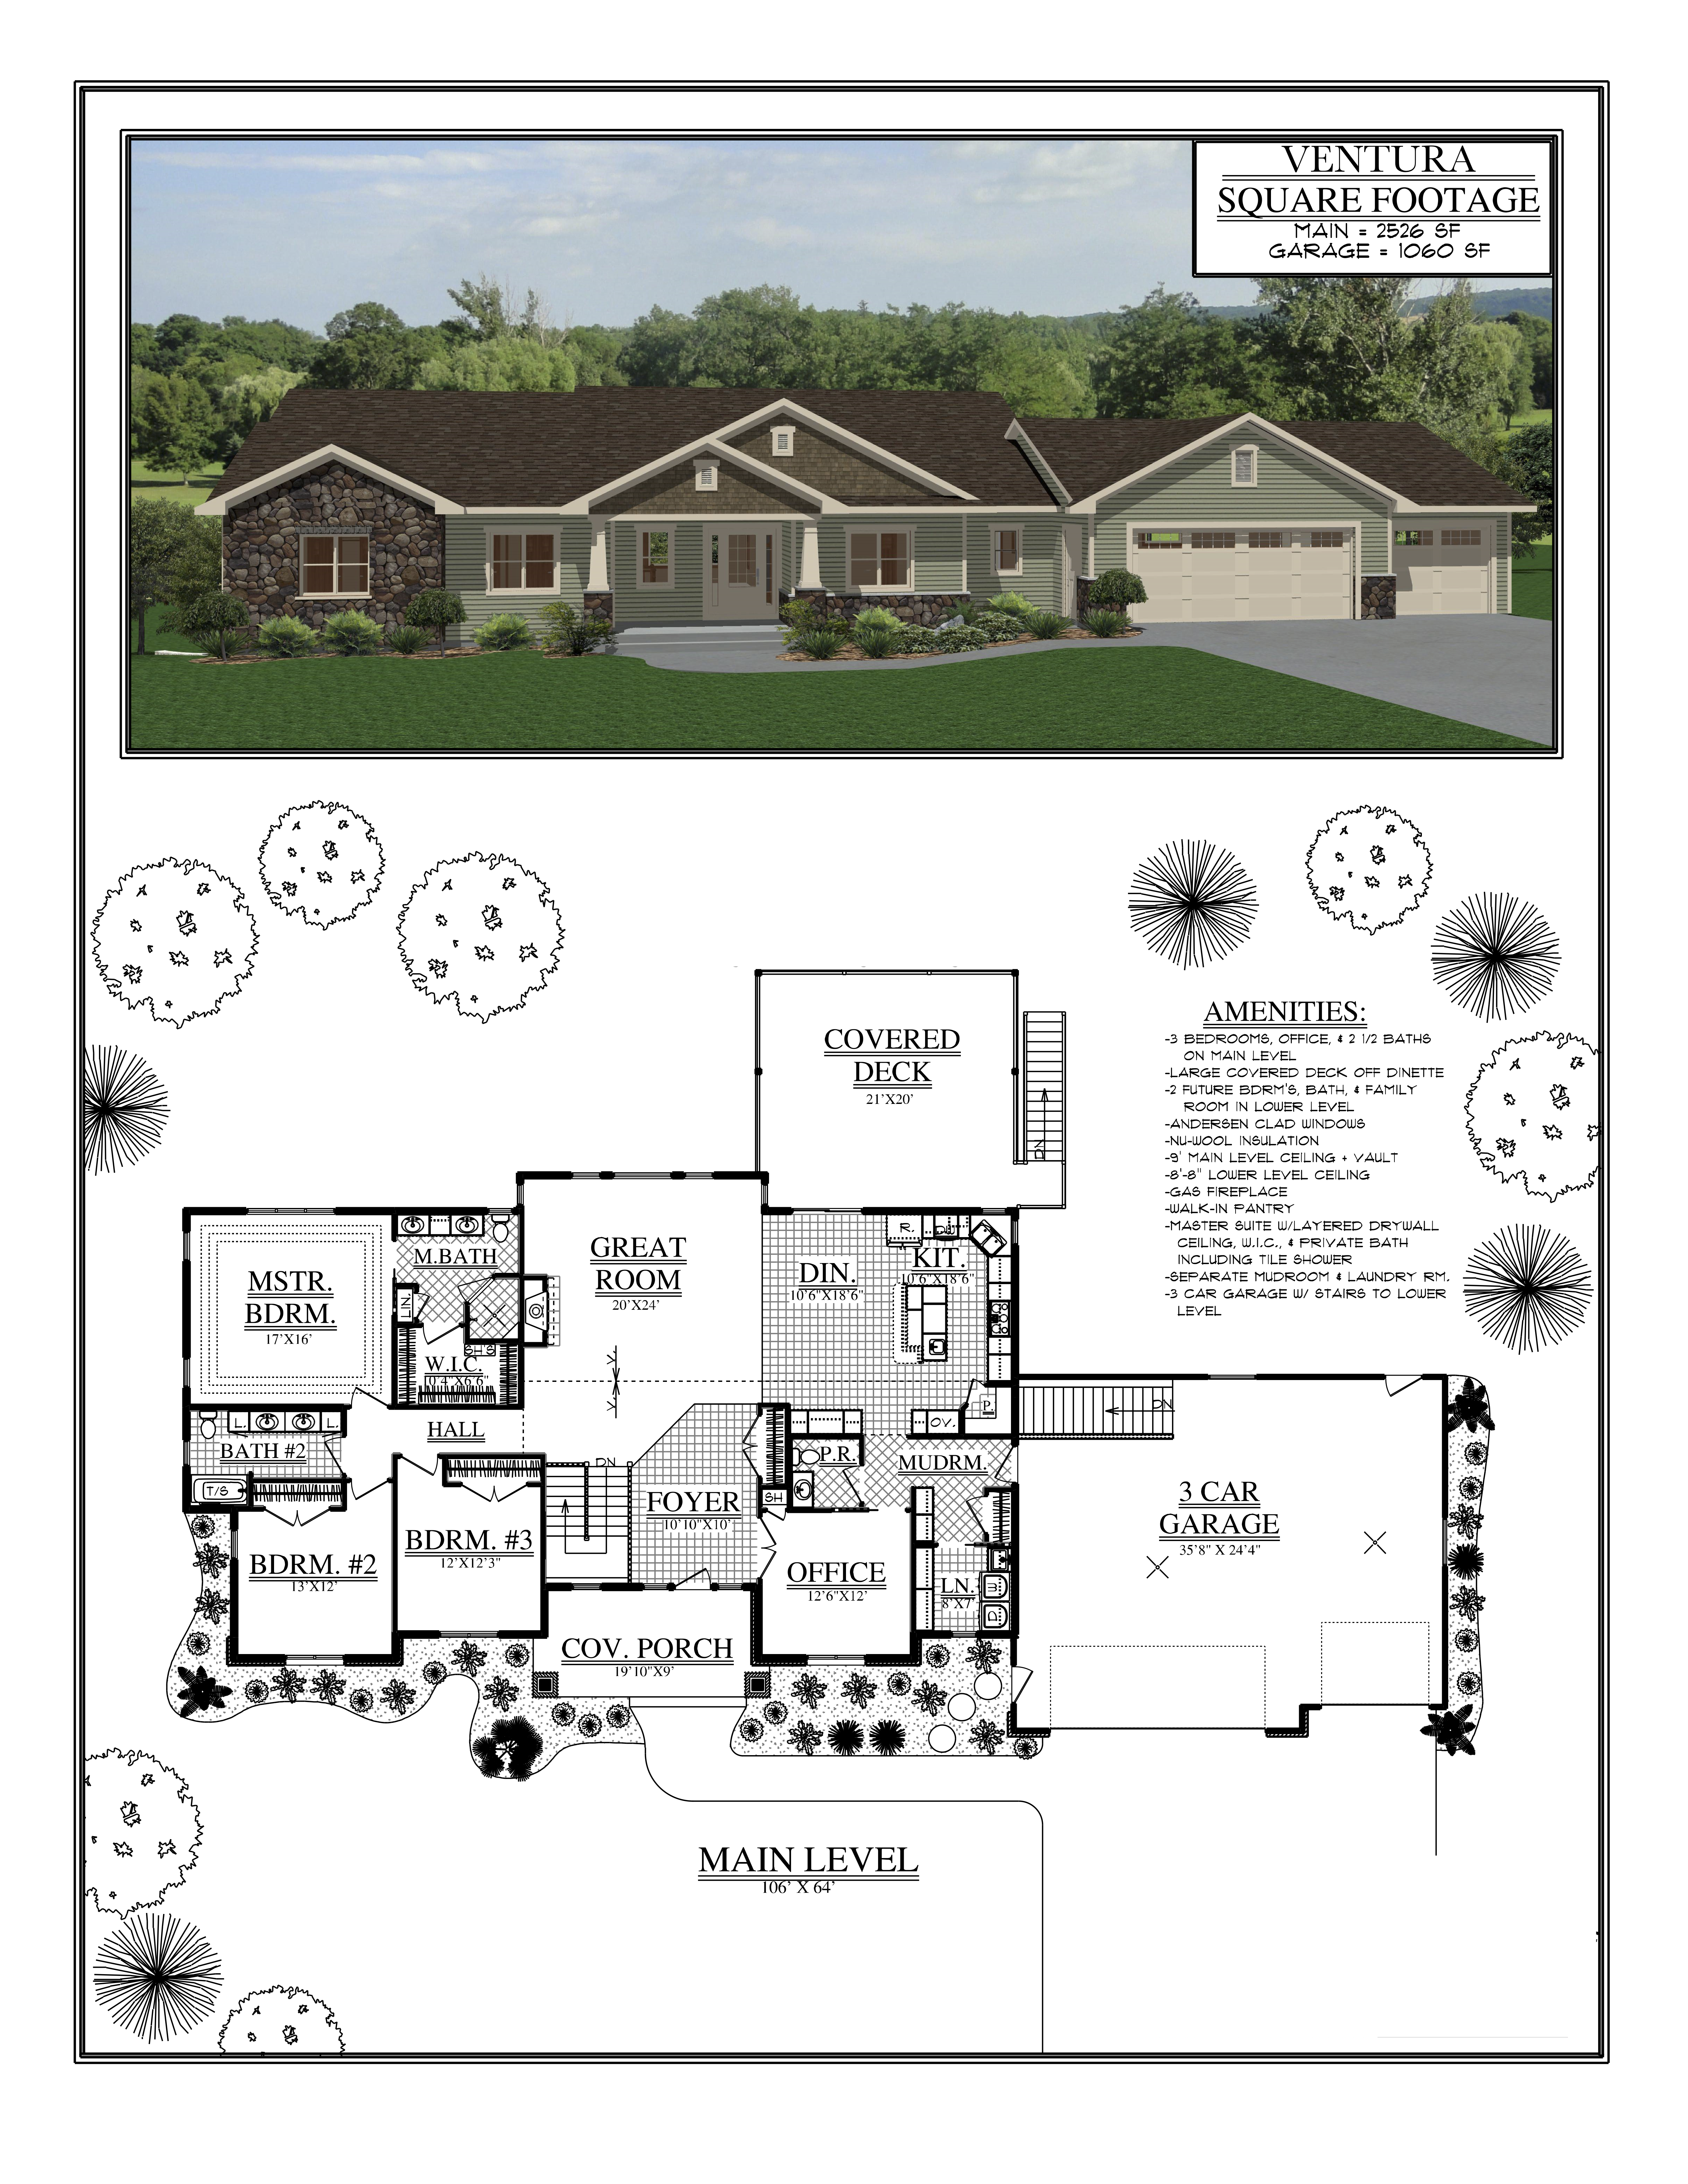 Home Construction - Floor Plans | John Michael Homes on garage plans with mud room, ranch house plans with vaulted great room, cabin plans with mud room, new american house plans with mud room, timber frame house plans with mud room, european house plans with mud room, small house plans with mud room, house plans with mudroom and laundry room, ranch house plans with large great room, ranch house plans with keeping room, 1.5 story house plans with mud room, house plan with large mud room, ranch house plans with formal living room,